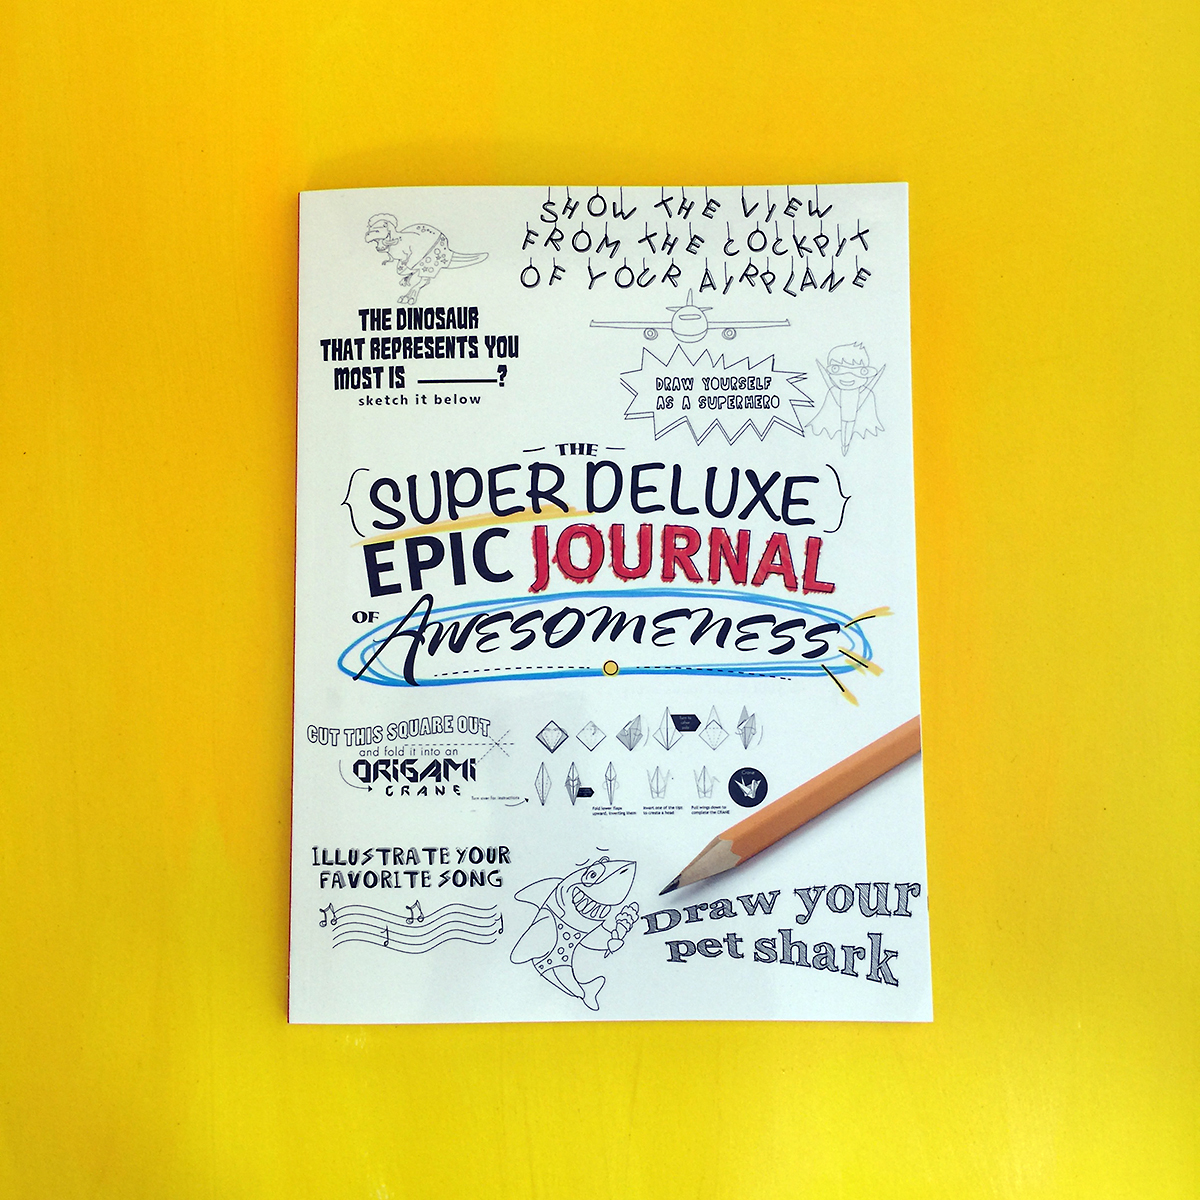 Super Epic Deluxe Journal Of Awesomeness